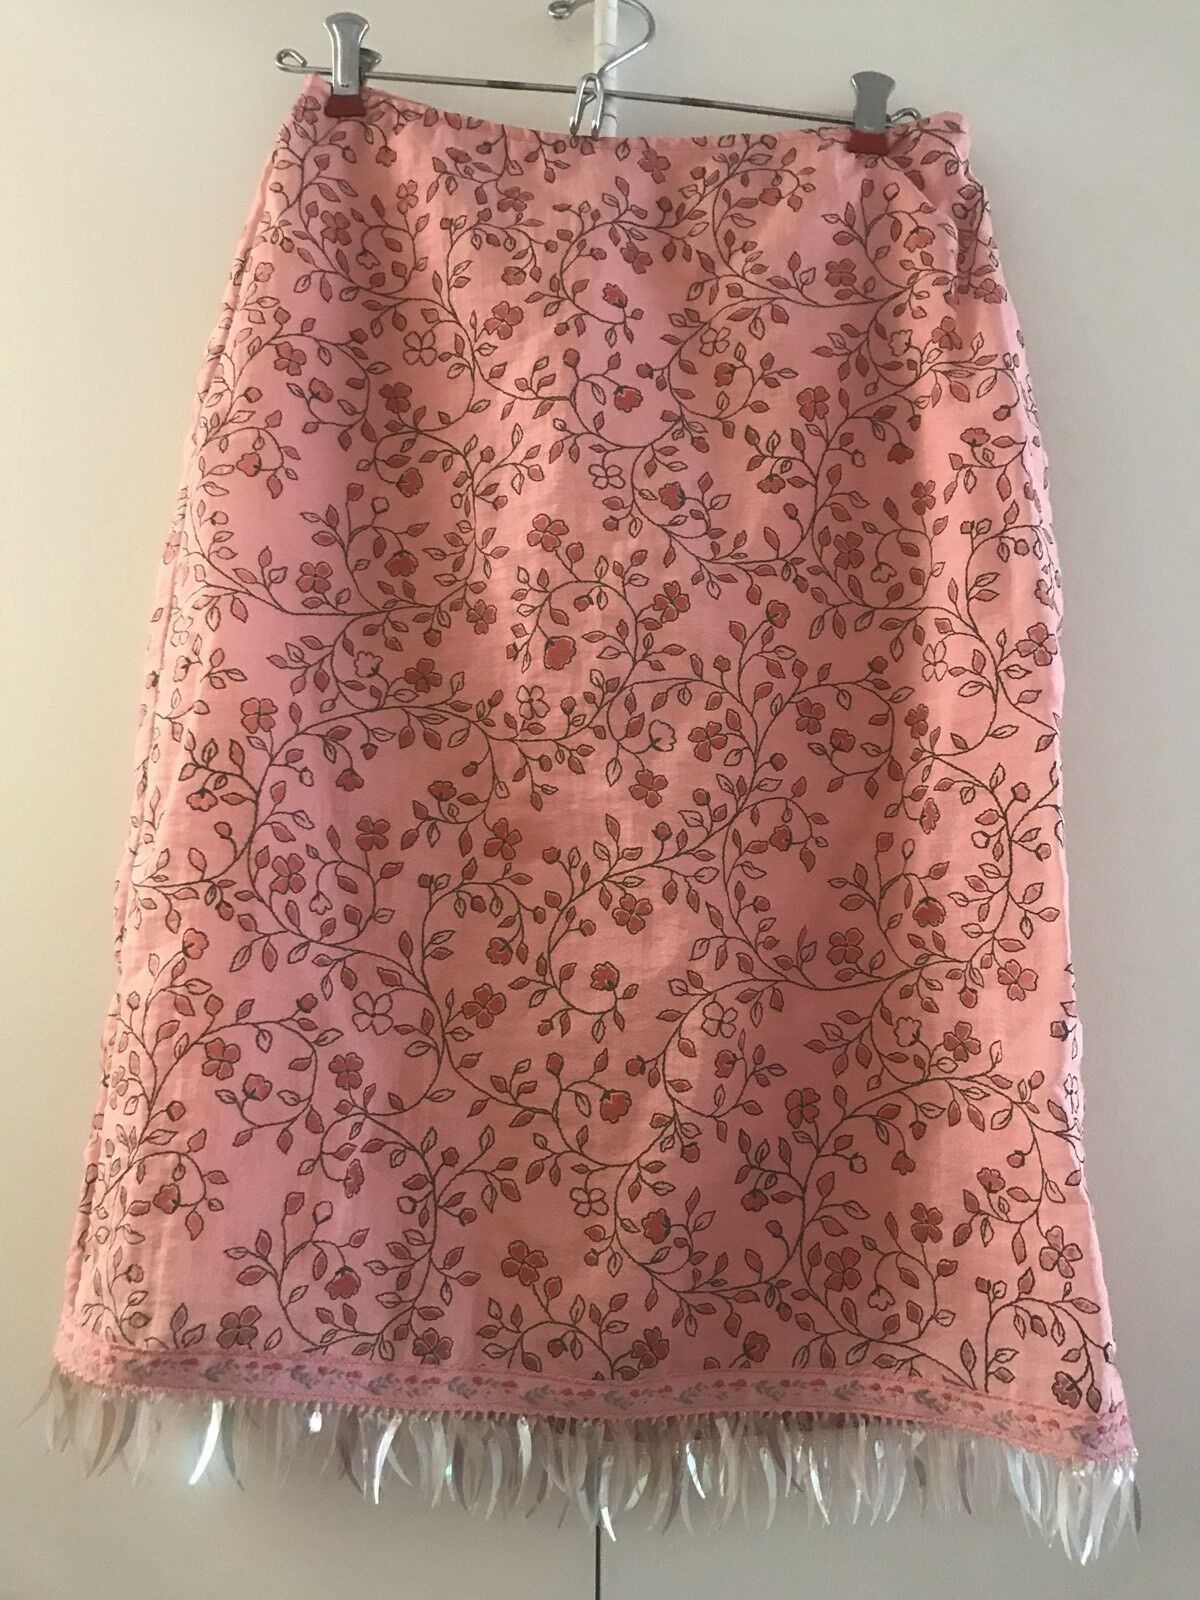 Betsey Johnson Rare Vintage Couture Skirt SZ S Pink w flowers,leaves,sequins